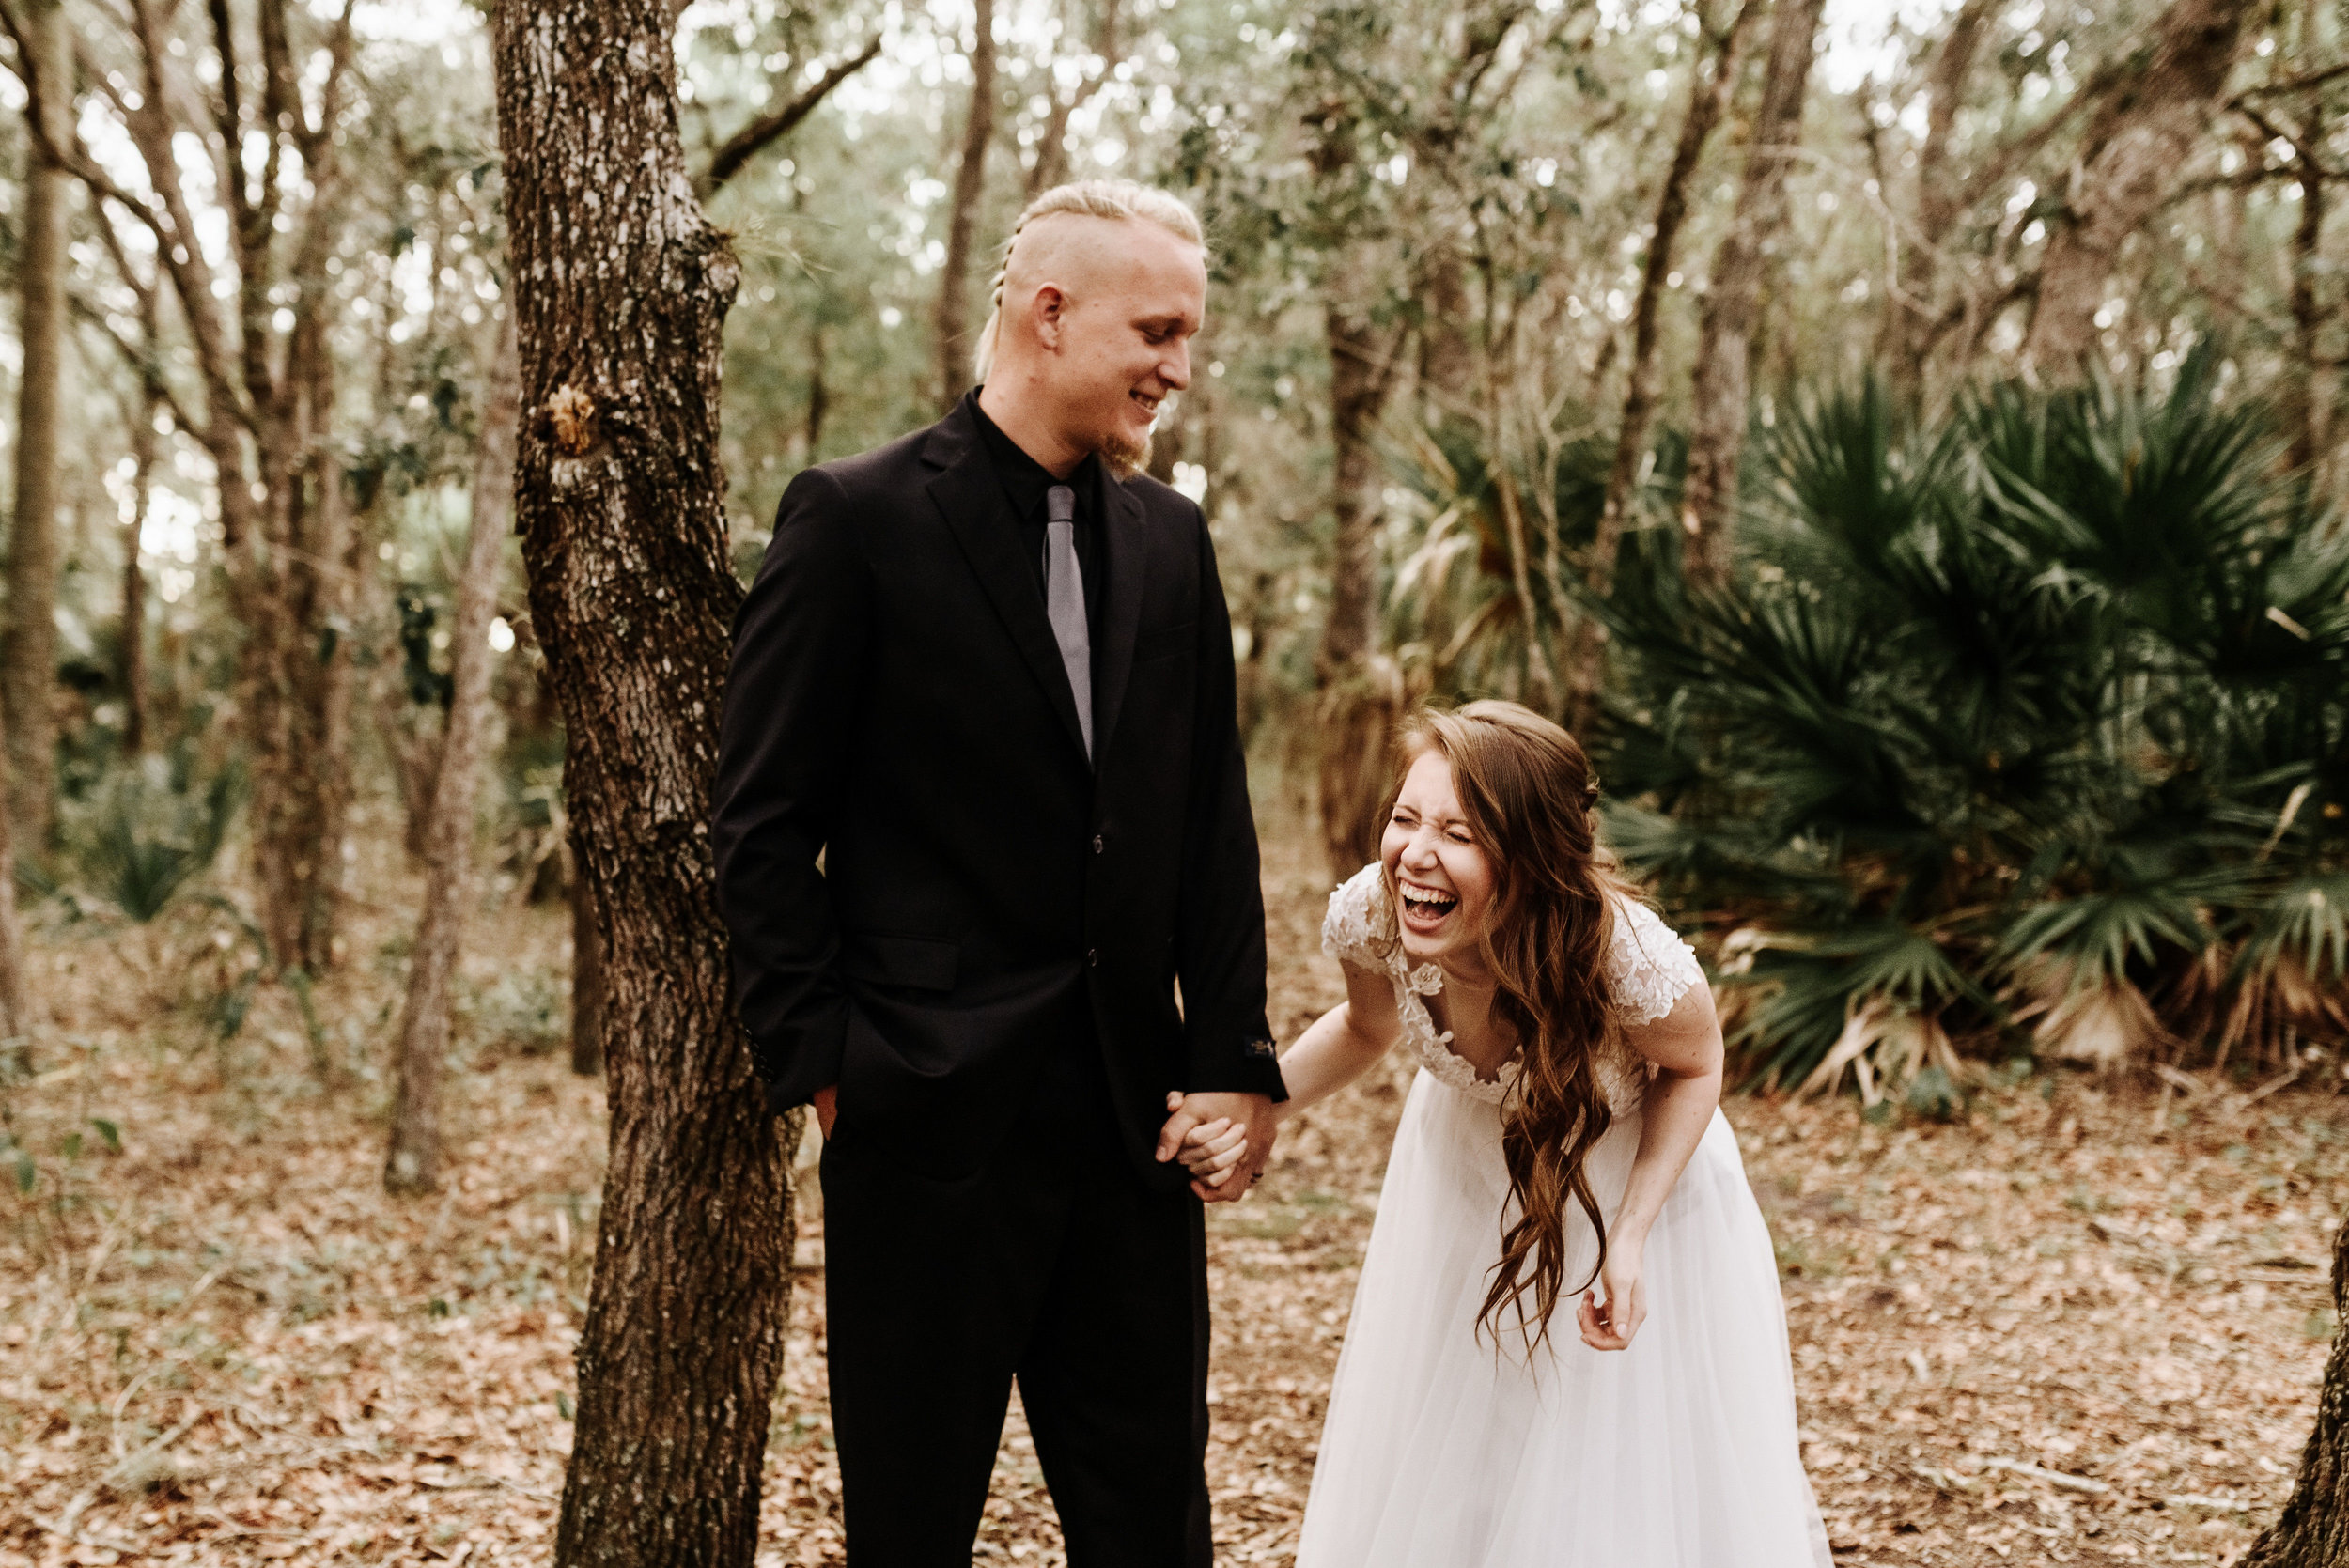 Jess_Micah_Portrait_Session_Wedding_Vero_Beach_Florida_Photography_by_V_0420.jpg